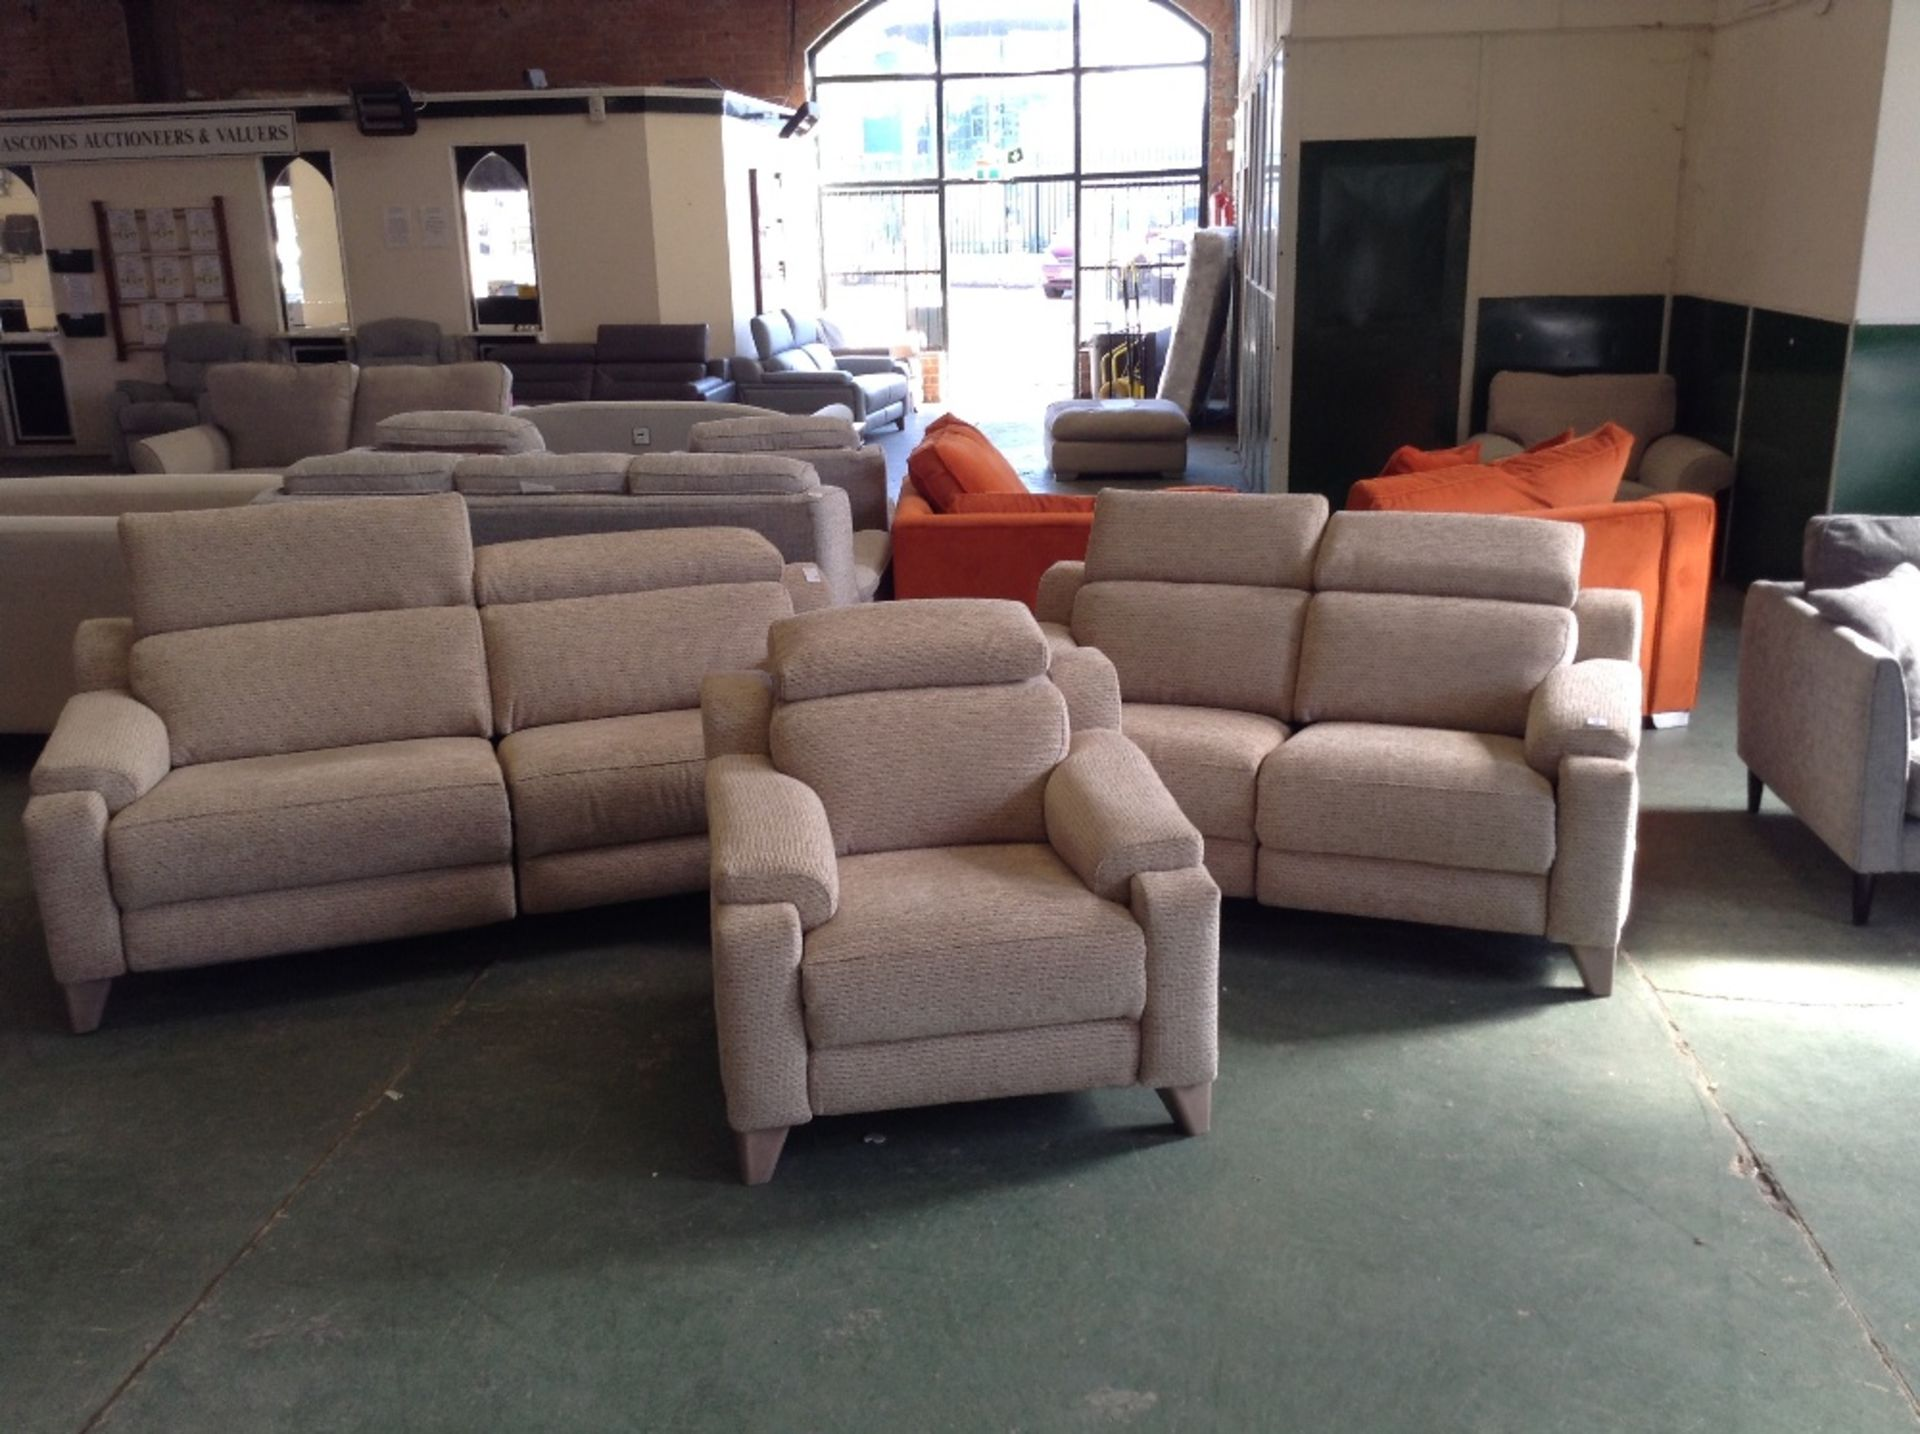 Lot 18 - BISCUIT ELECTRIC RECLINING 3 SEATER SOFA 2 SEATER